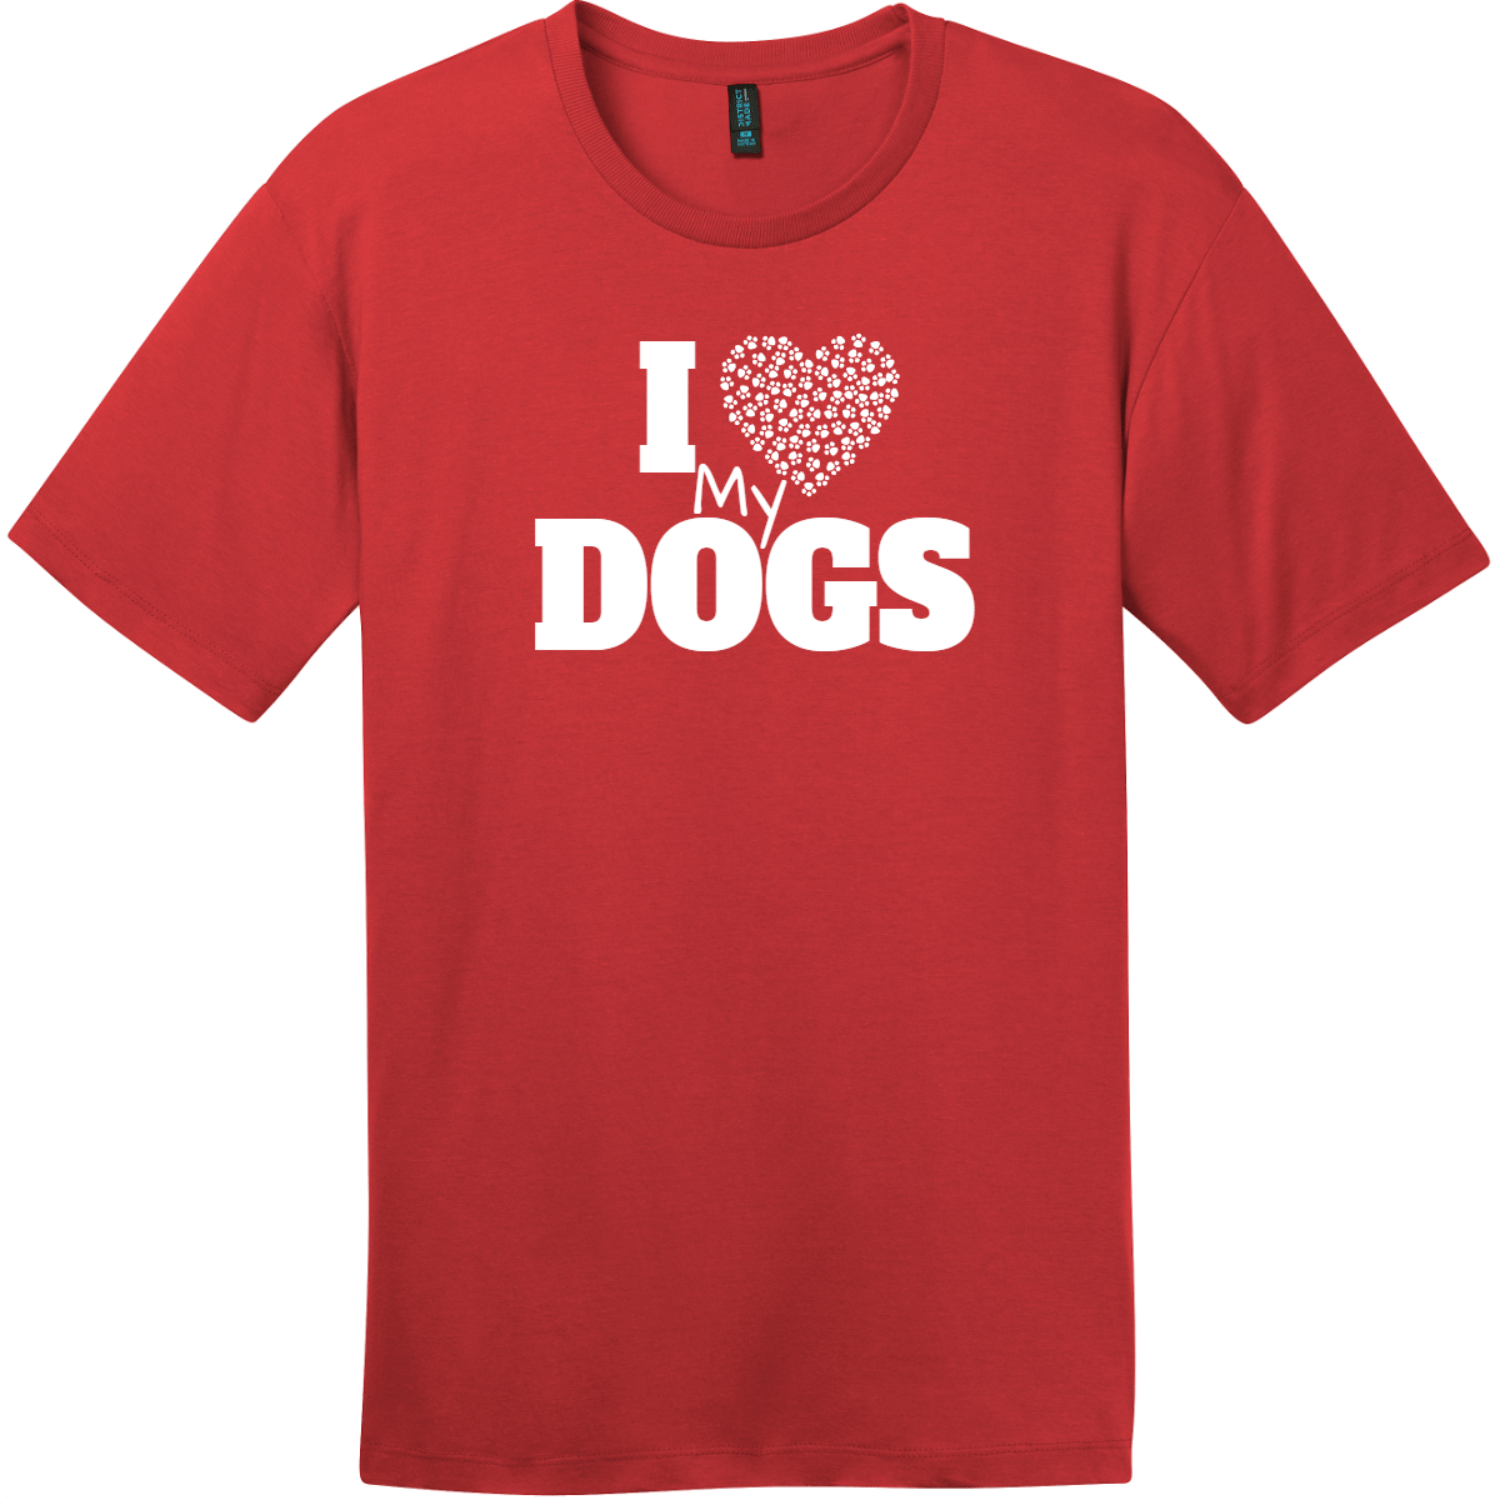 I Love My Dogs Heart T-Shirt Classic Red District Perfect Weight Tee DT104